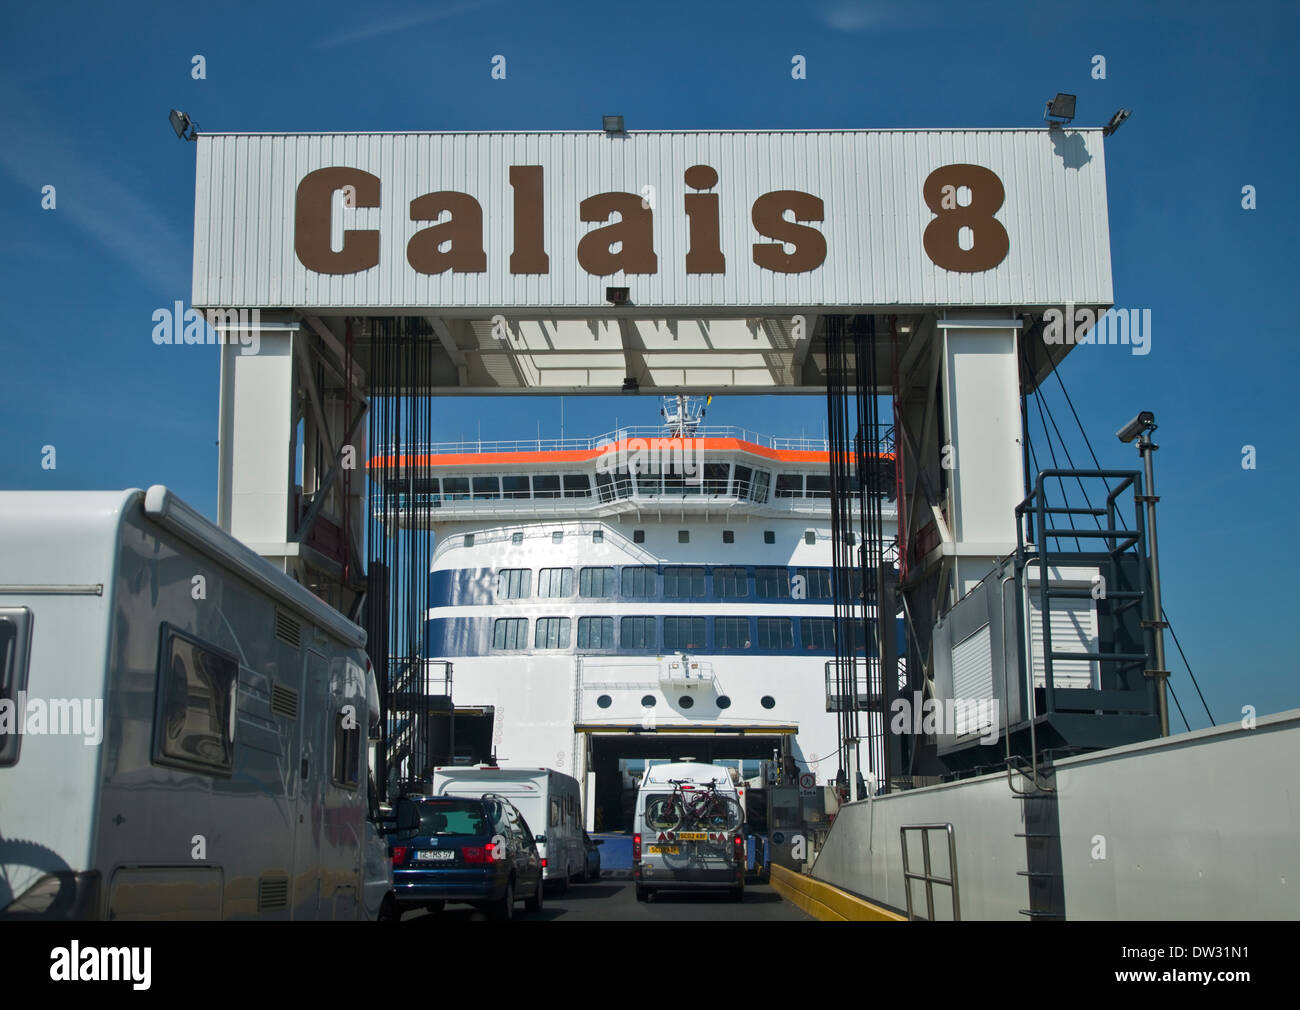 View from Boarding Ramp onto P&O Ferry Spirit of Britain, Port of Calais, France - Stock Image